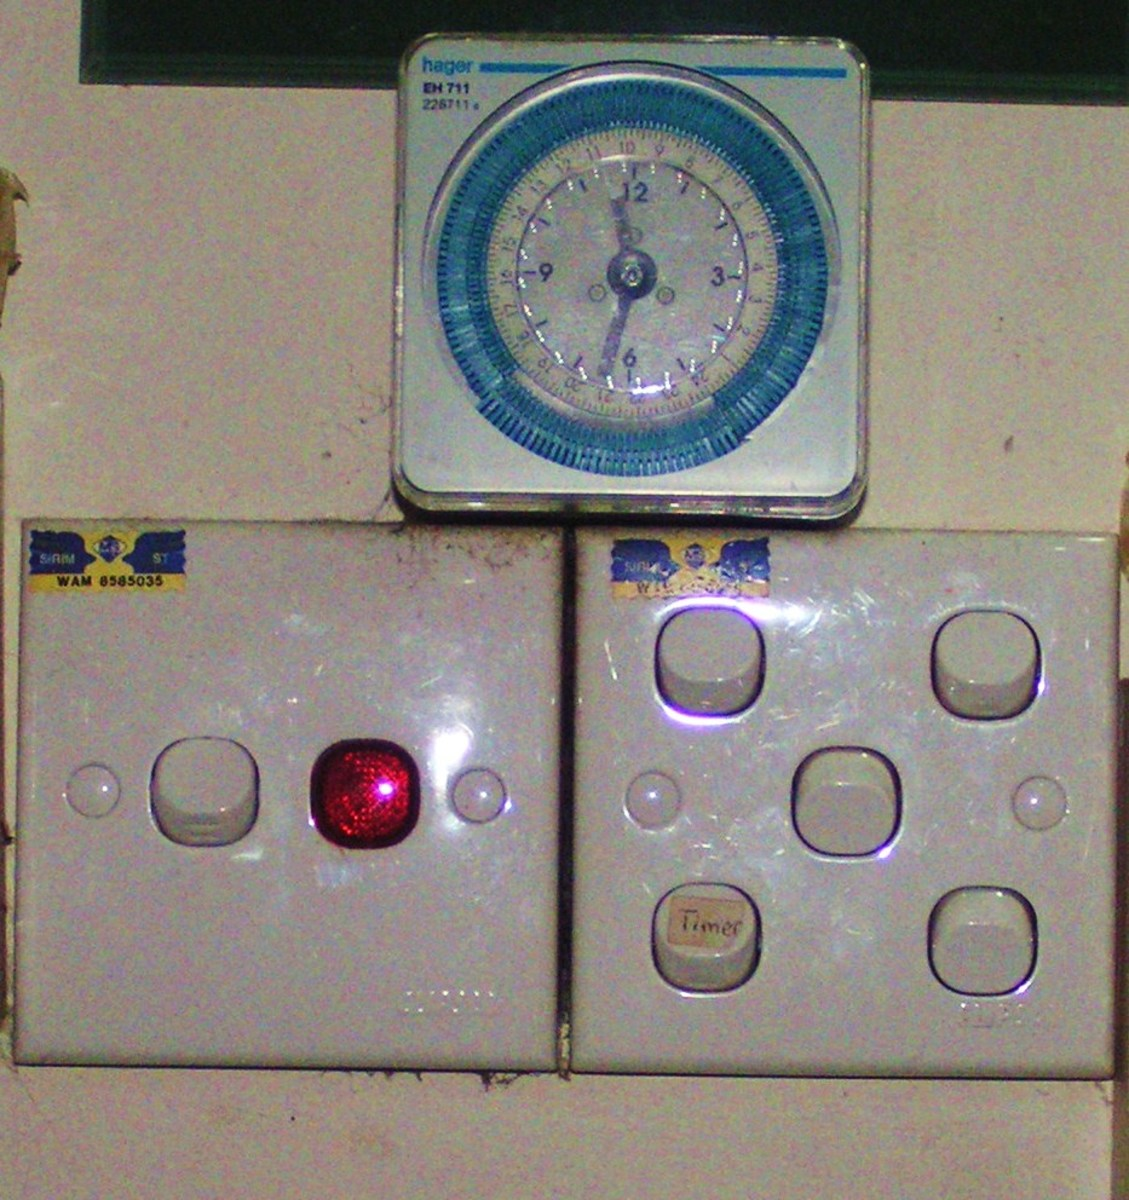 Timer switch in my home.